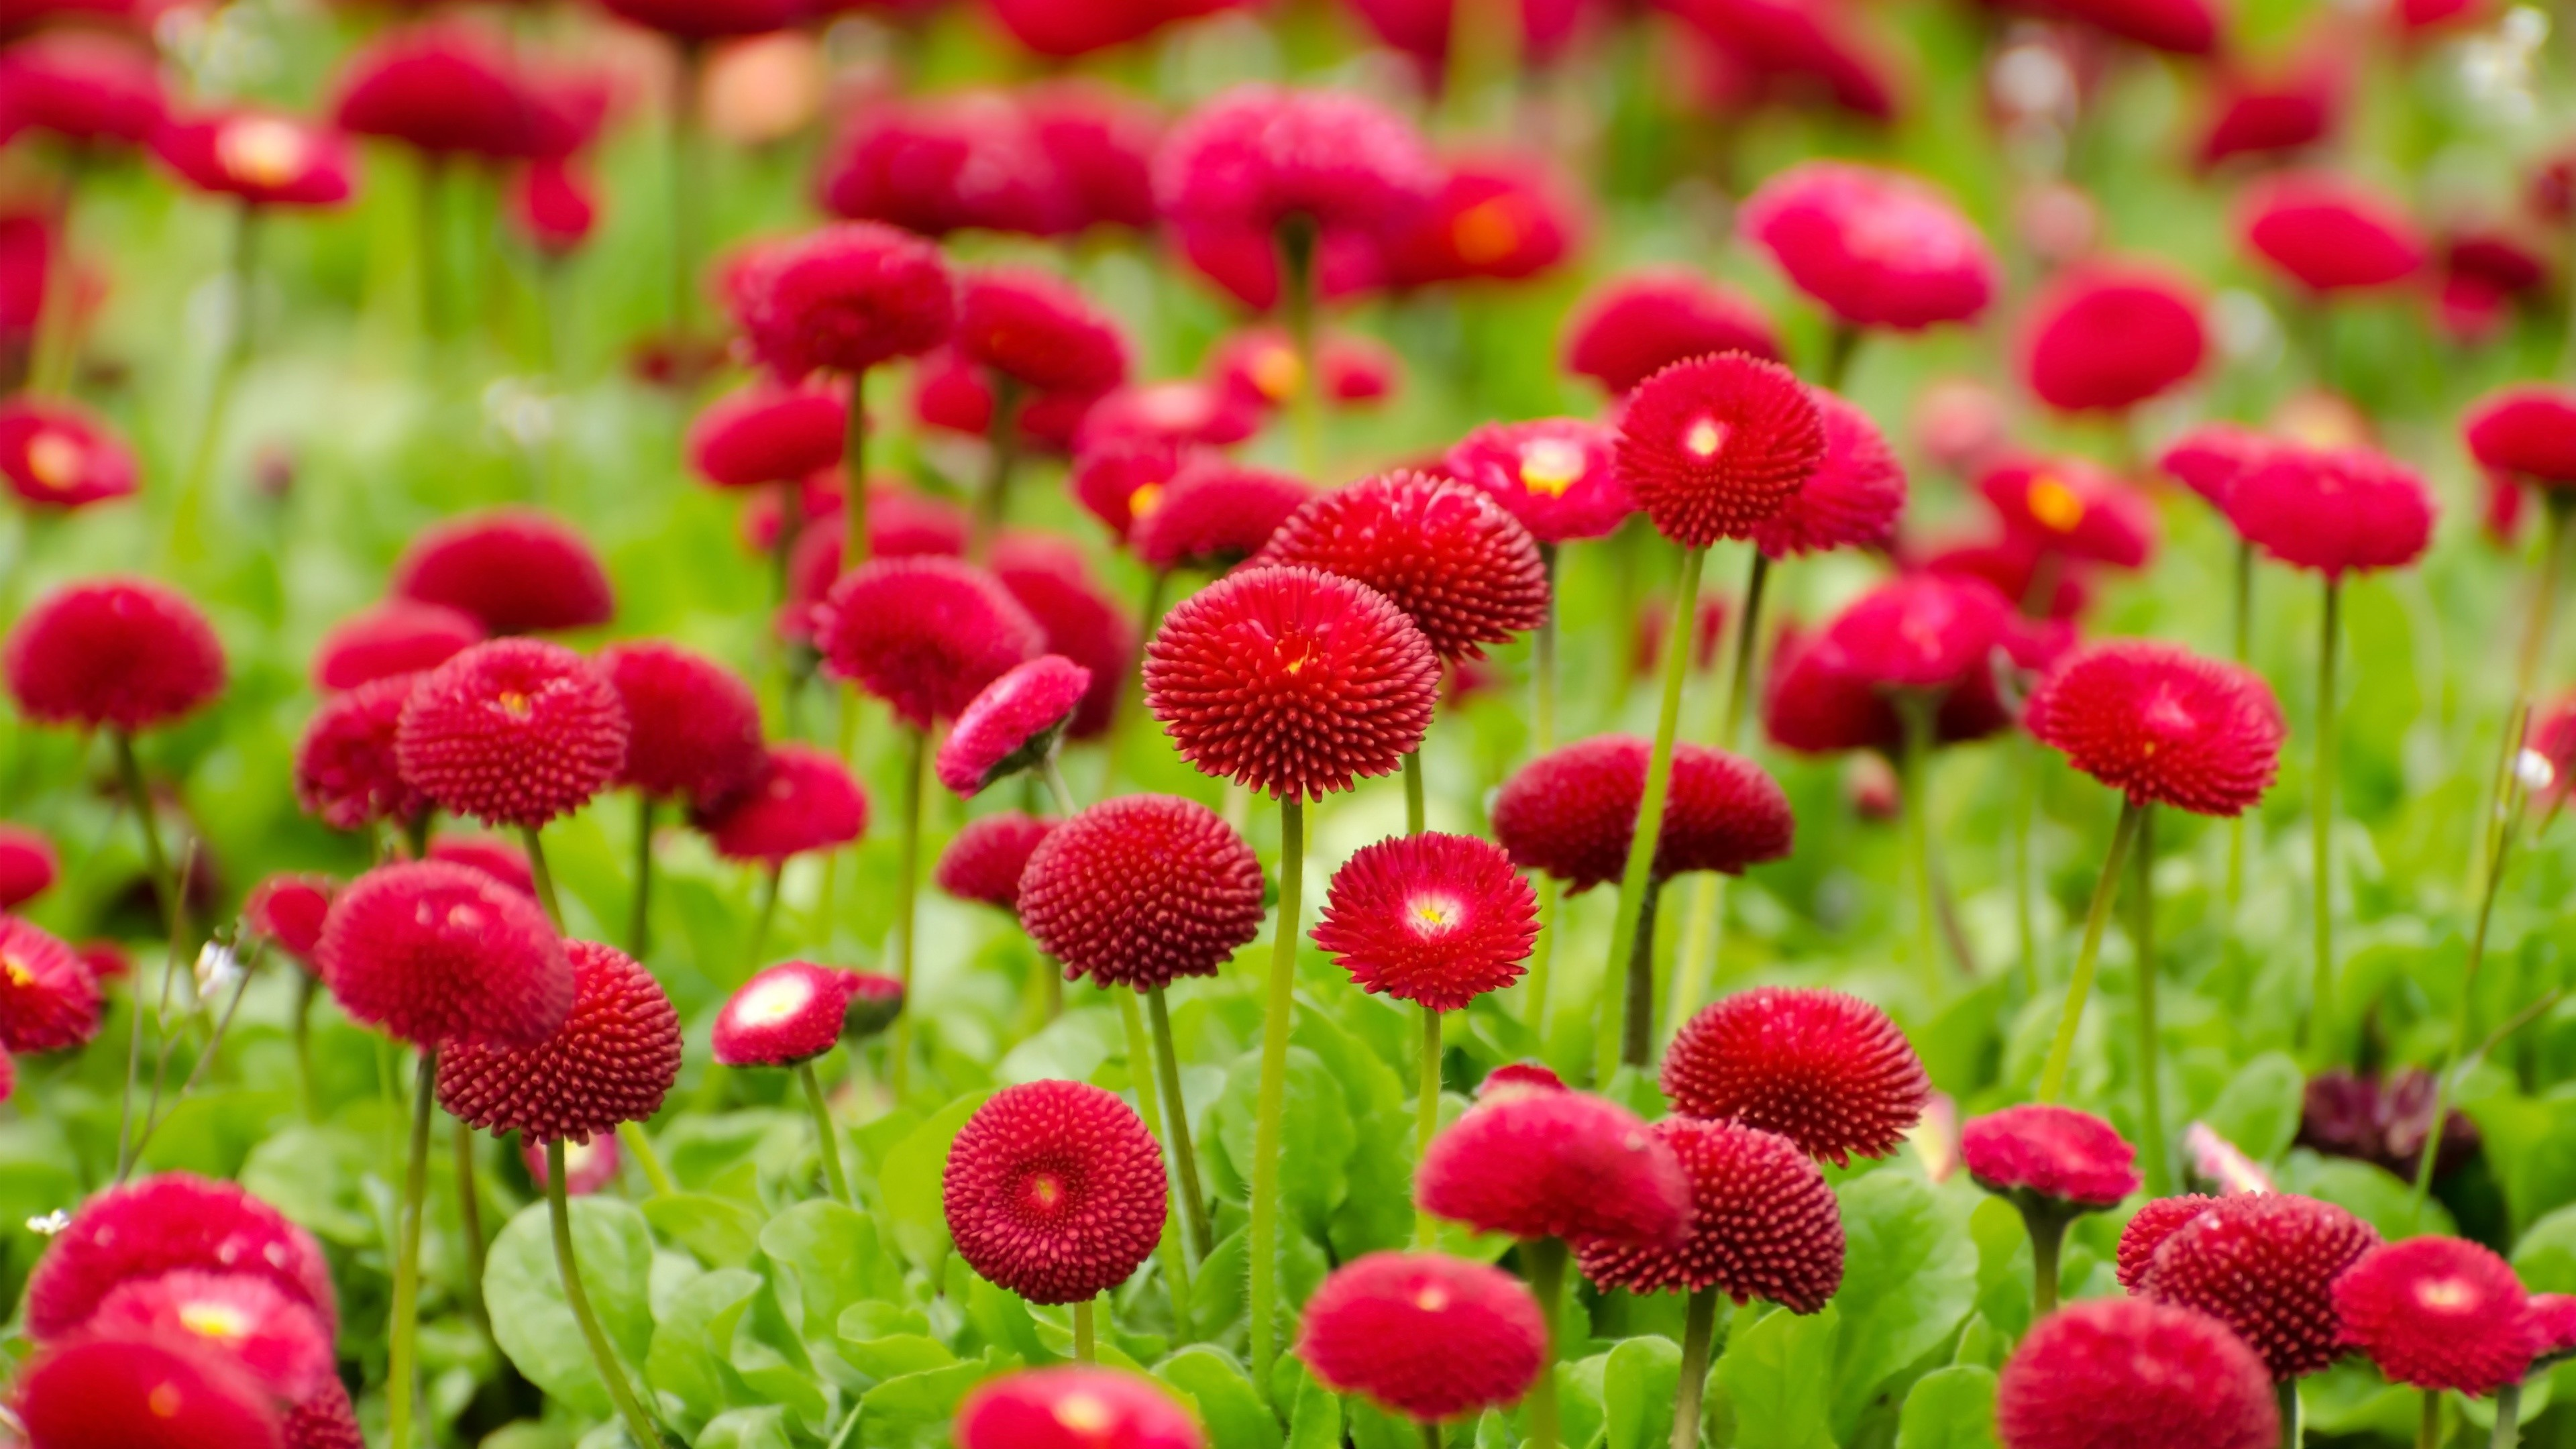 Summer Red Flowers